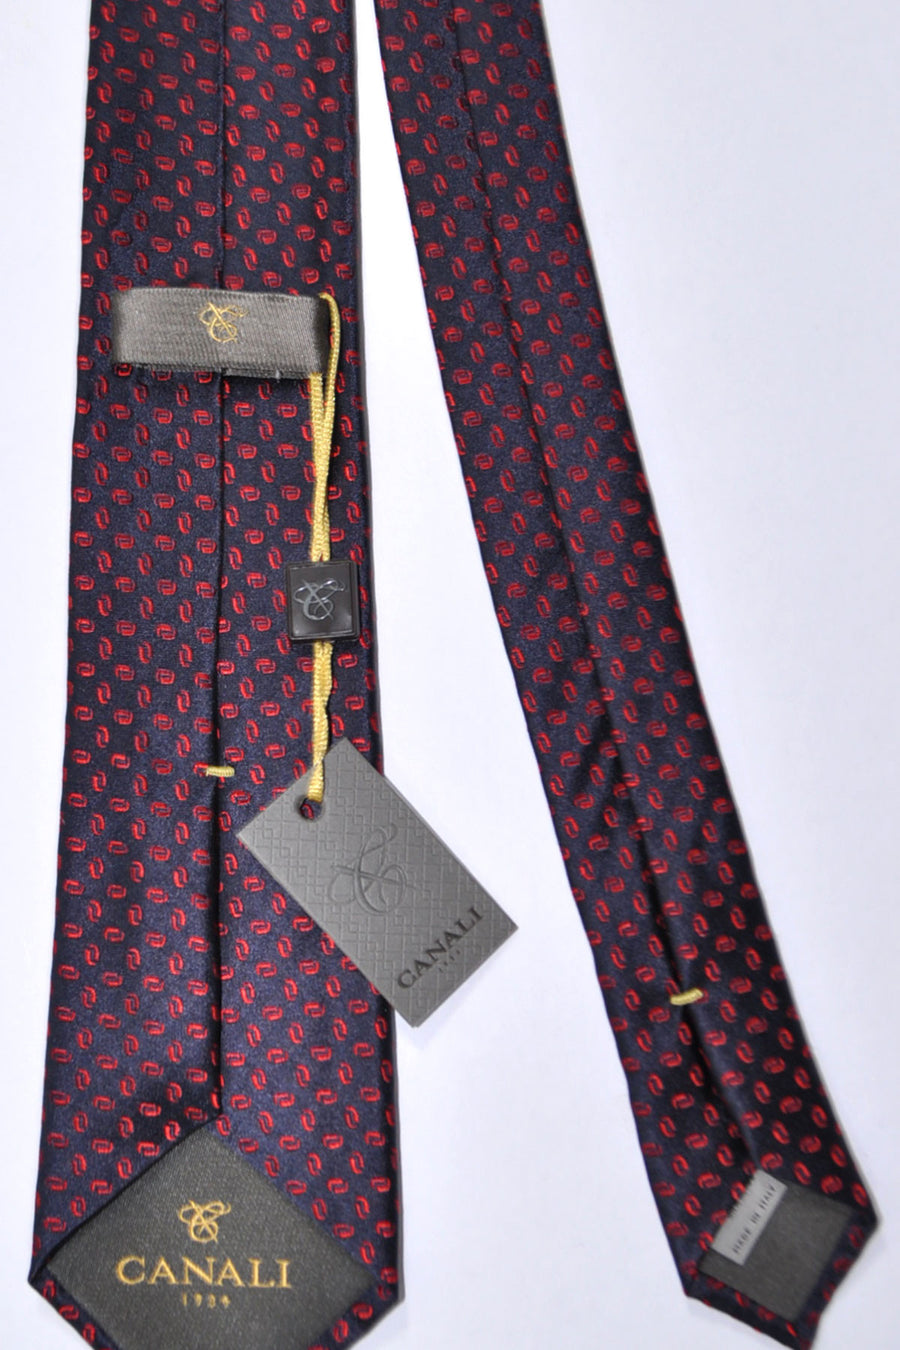 Canali Tie Dark Navy Red Geometric